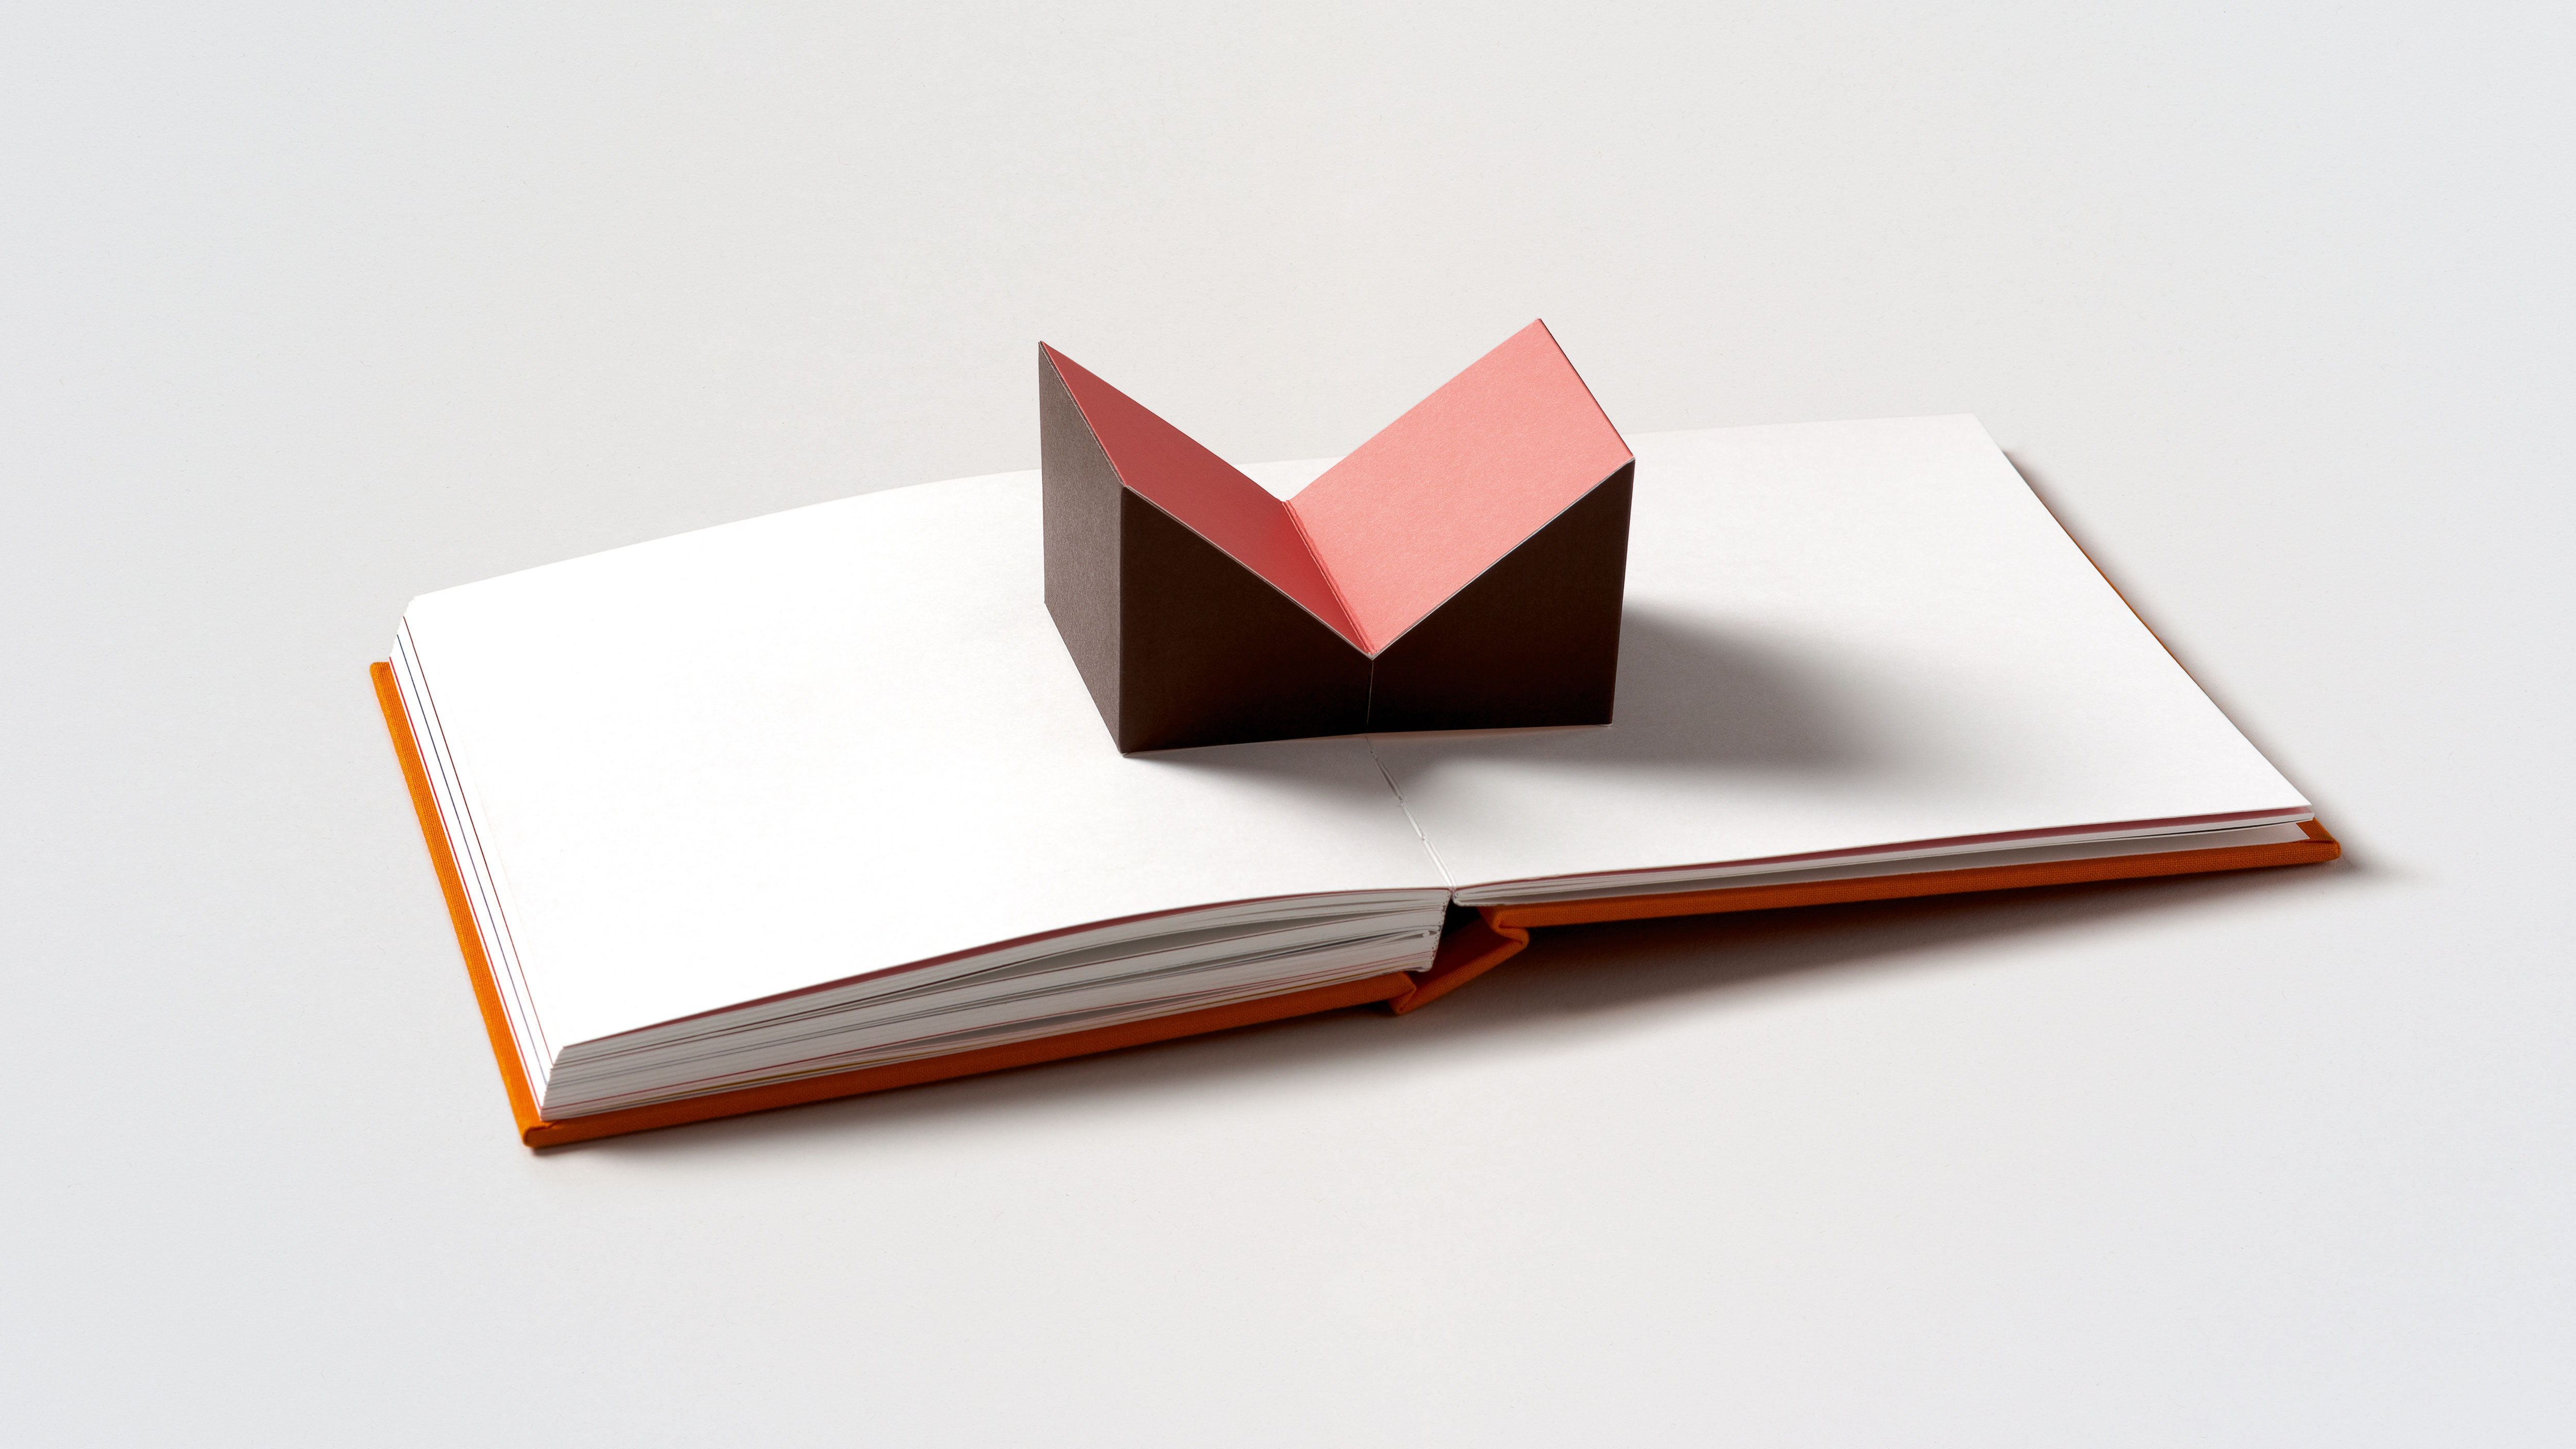 How to design a book: the creative's guide